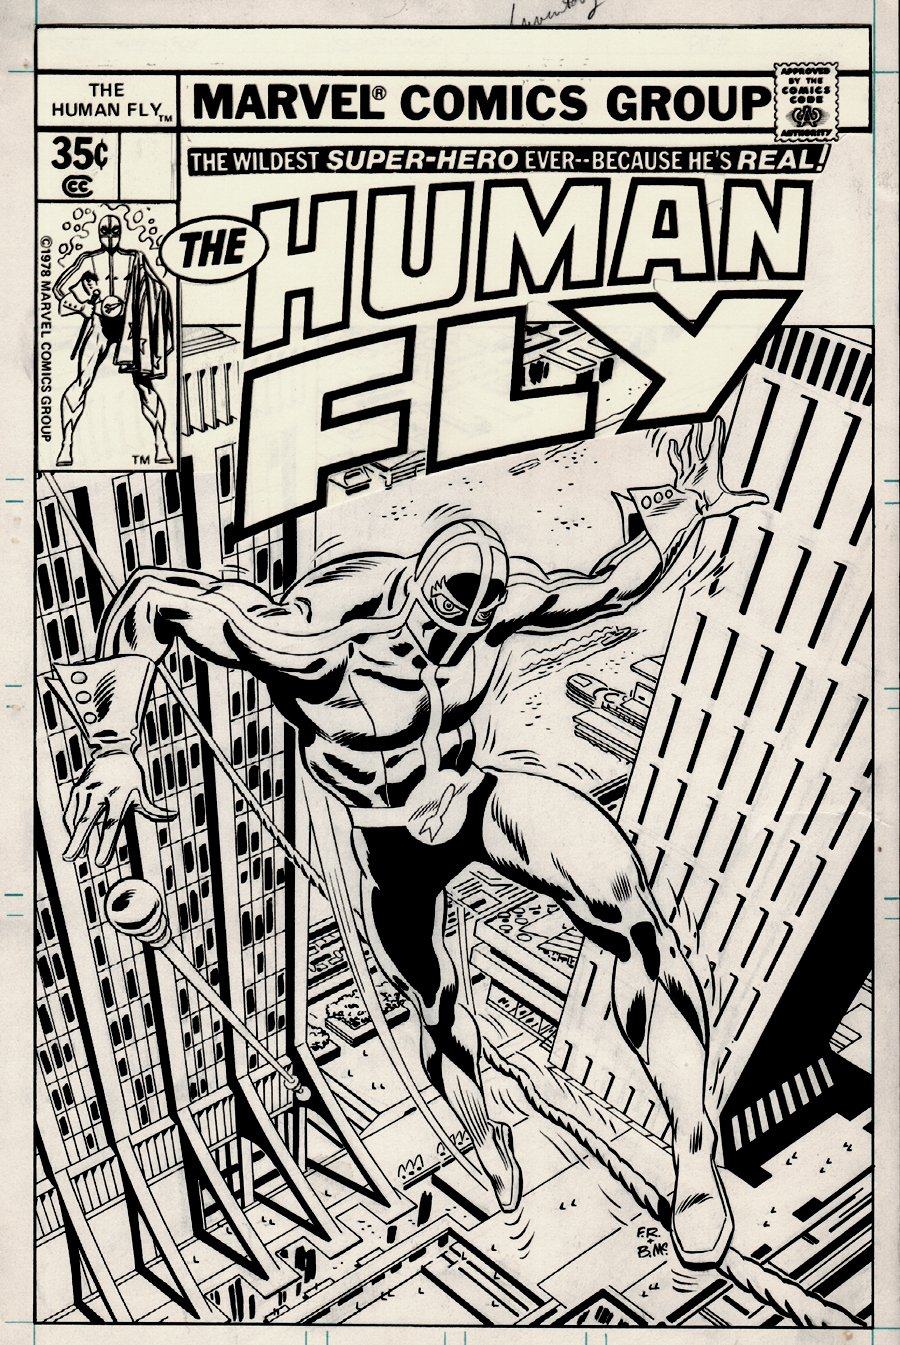 The Human Fly #14 Unpublished Cover (1978)